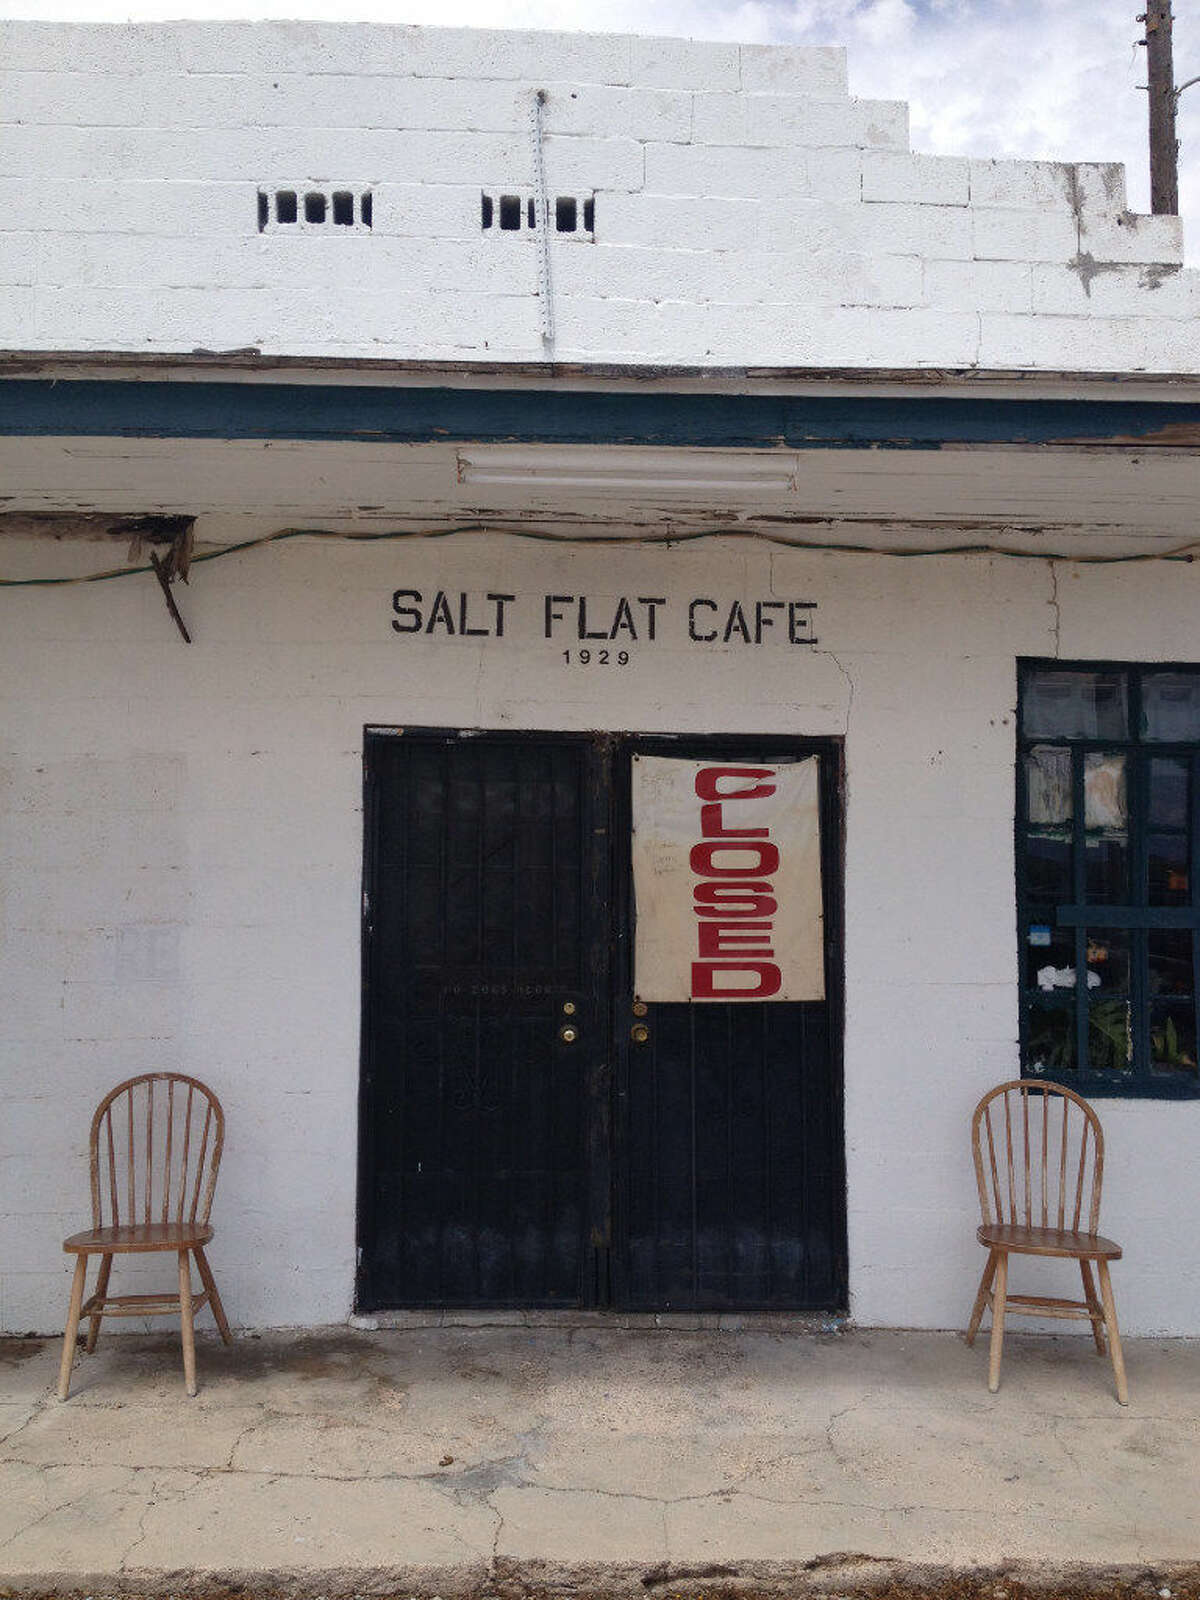 Shirley Richardson's grandparents opened the Salt Flat Cafe and bus stop in 1929. Closed for eight months, it will reopen when Richardson recovers from injuries sustained when she fell trying to keep a dog from being hit by a truck.